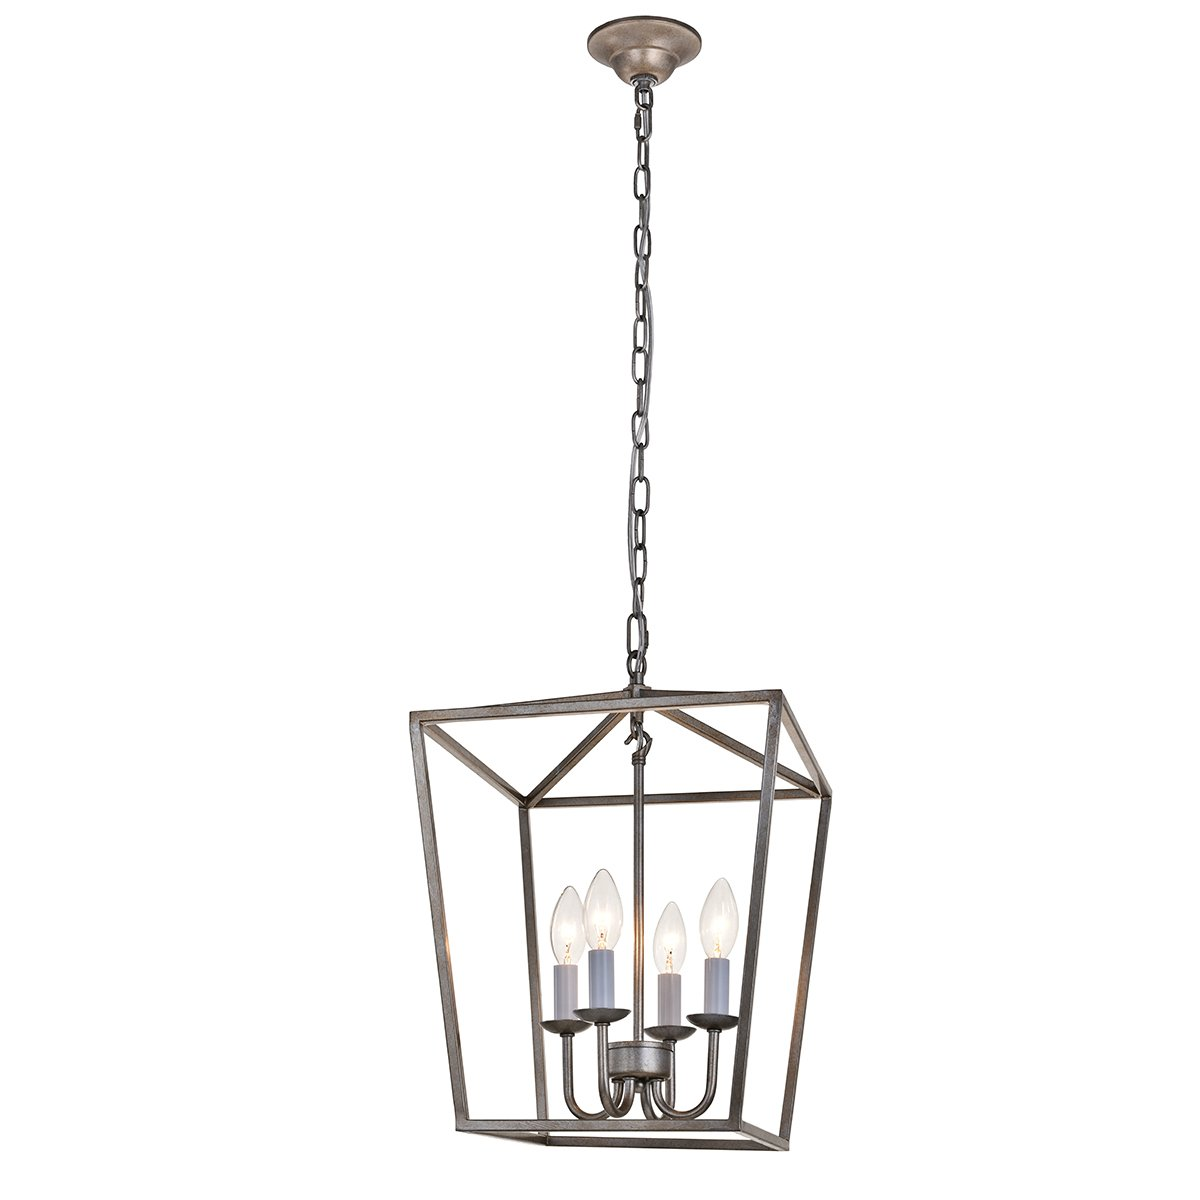 """ANJIADENGSHI Pendant Lantern Industrial Vintage Cage Hanging Lantern Iron with 4 Pendant Lantern Lights for Traditional Dining Room Bar Cafe L12.6"""" x W12.6"""" x H18.1"""", Ancient Silver"""